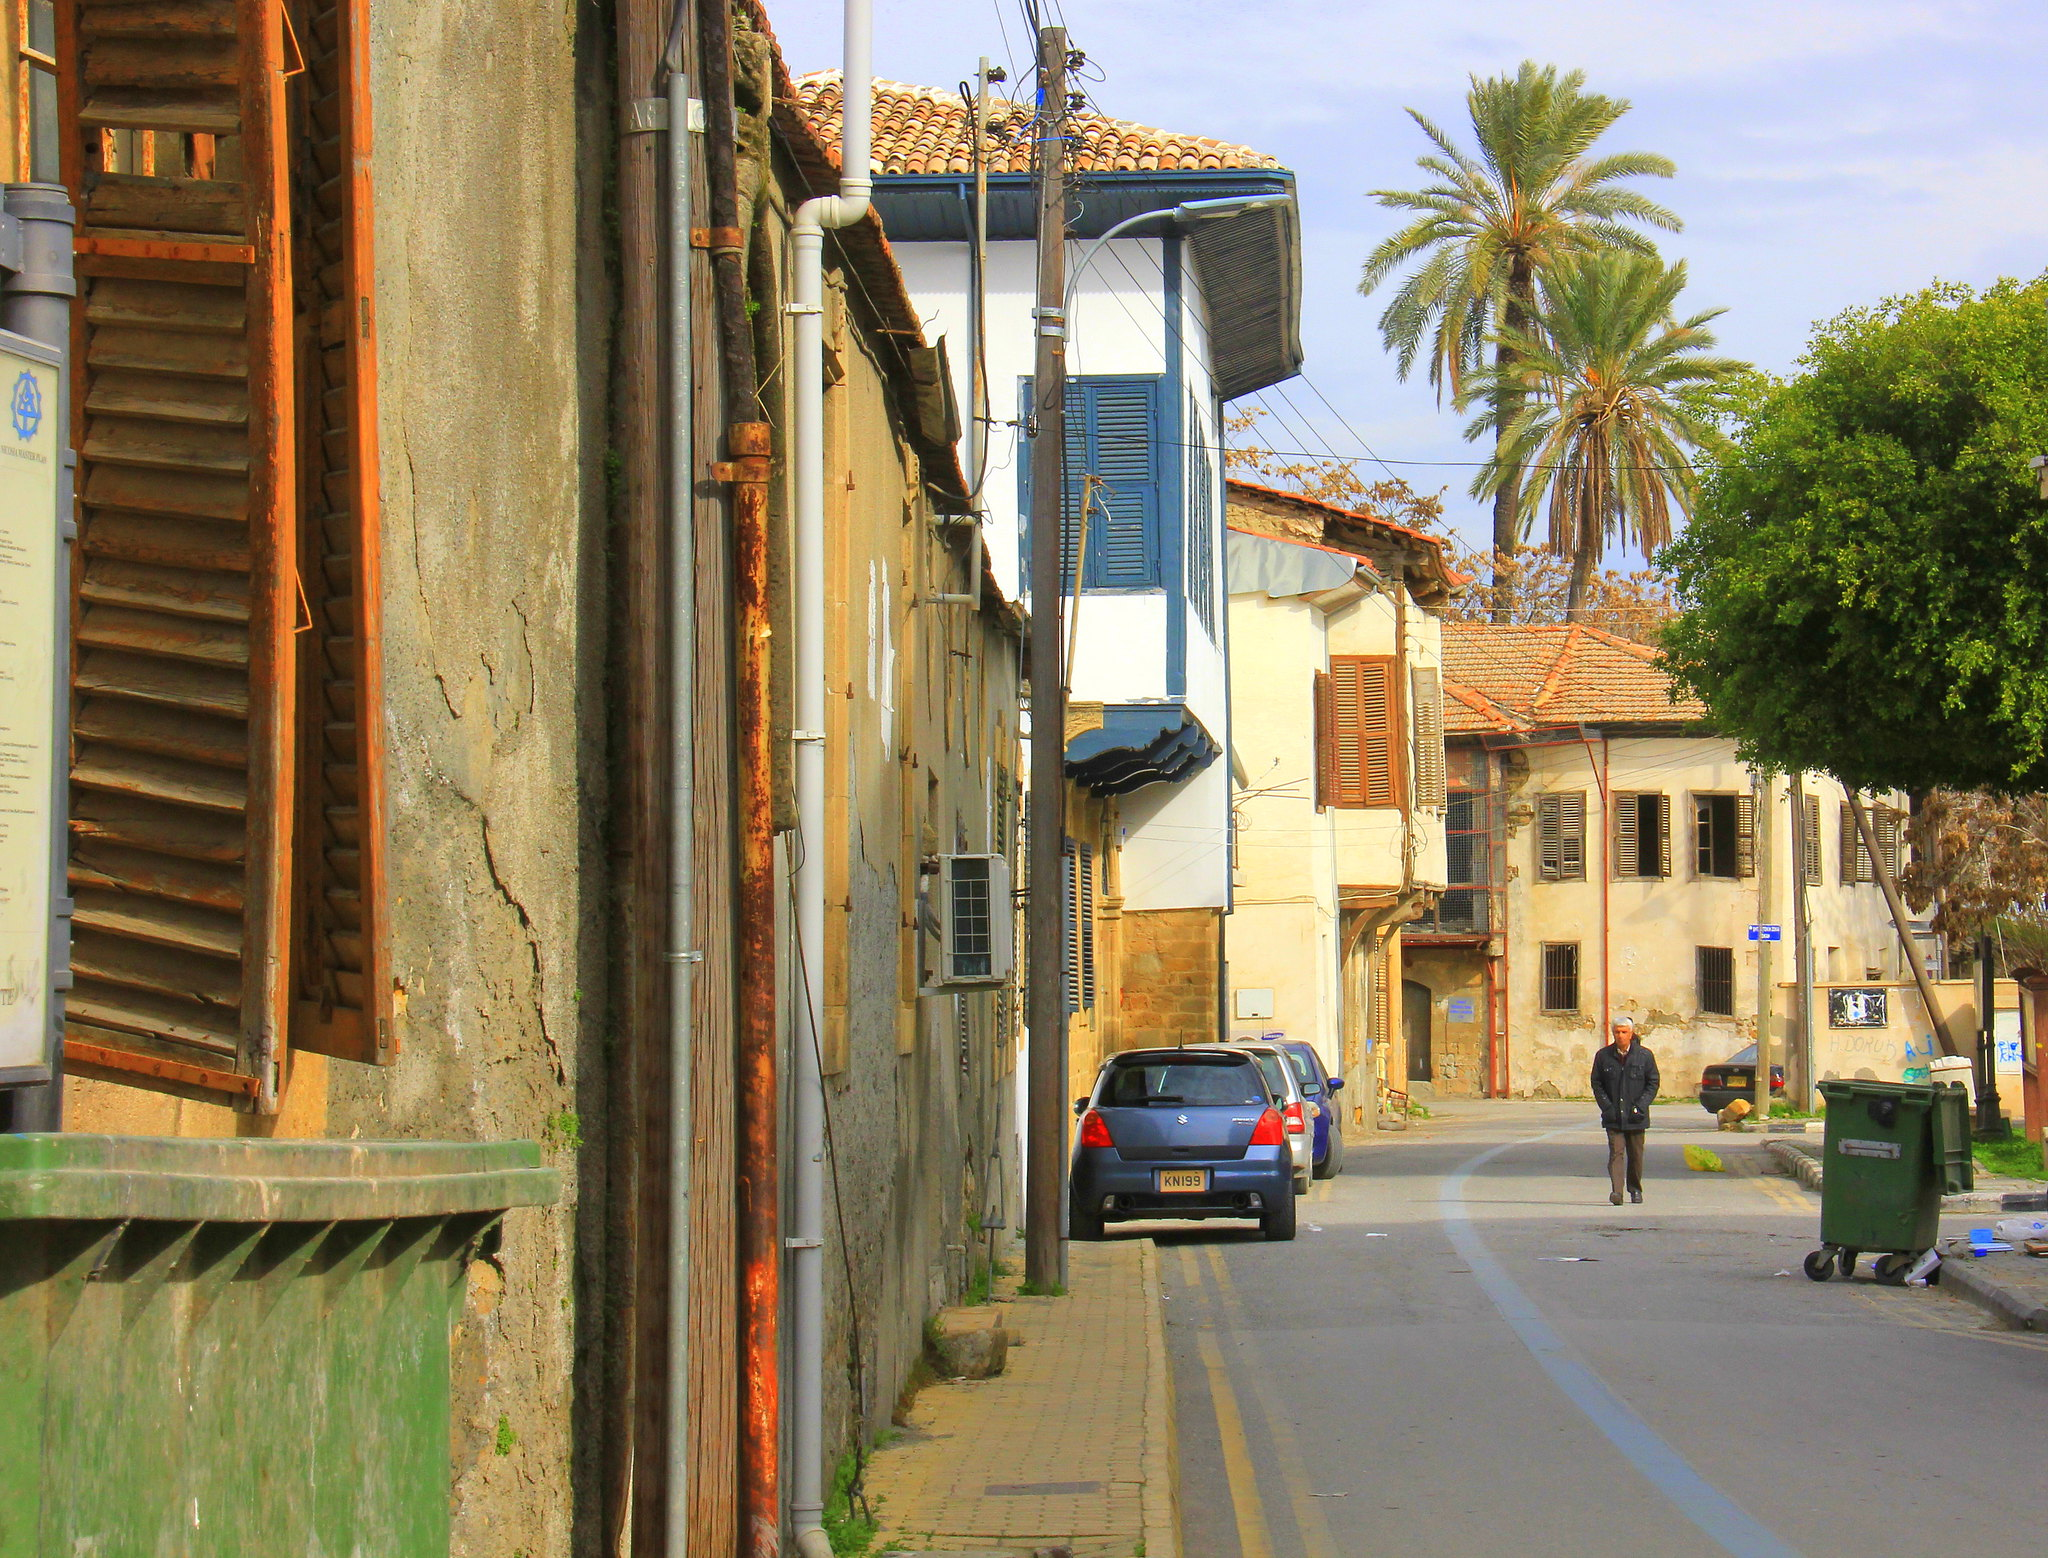 Old Nicosia lanes are full of character